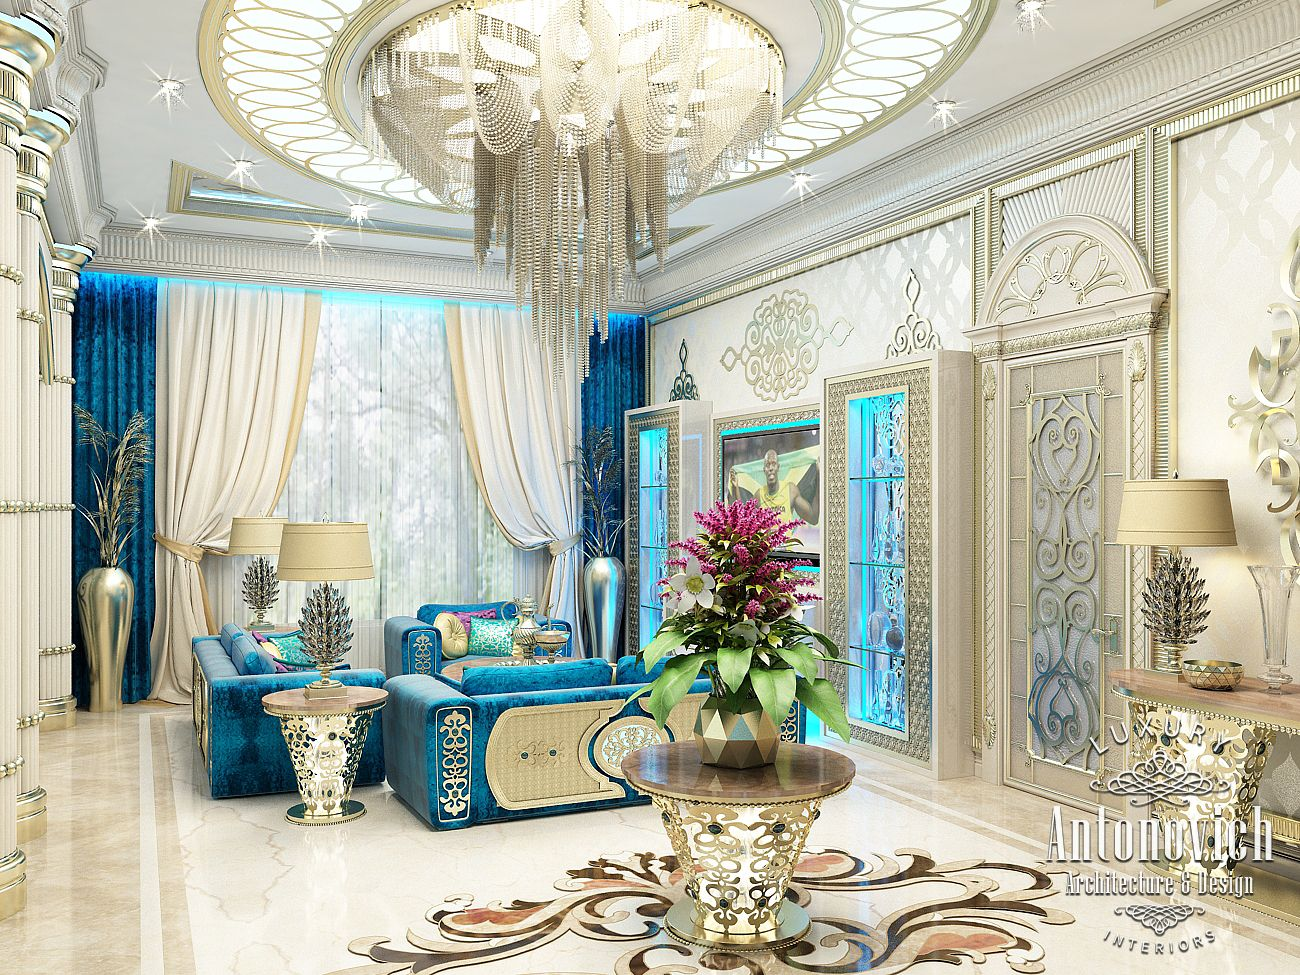 Luxury antonovich design uae 2015 for Duta villa interior design